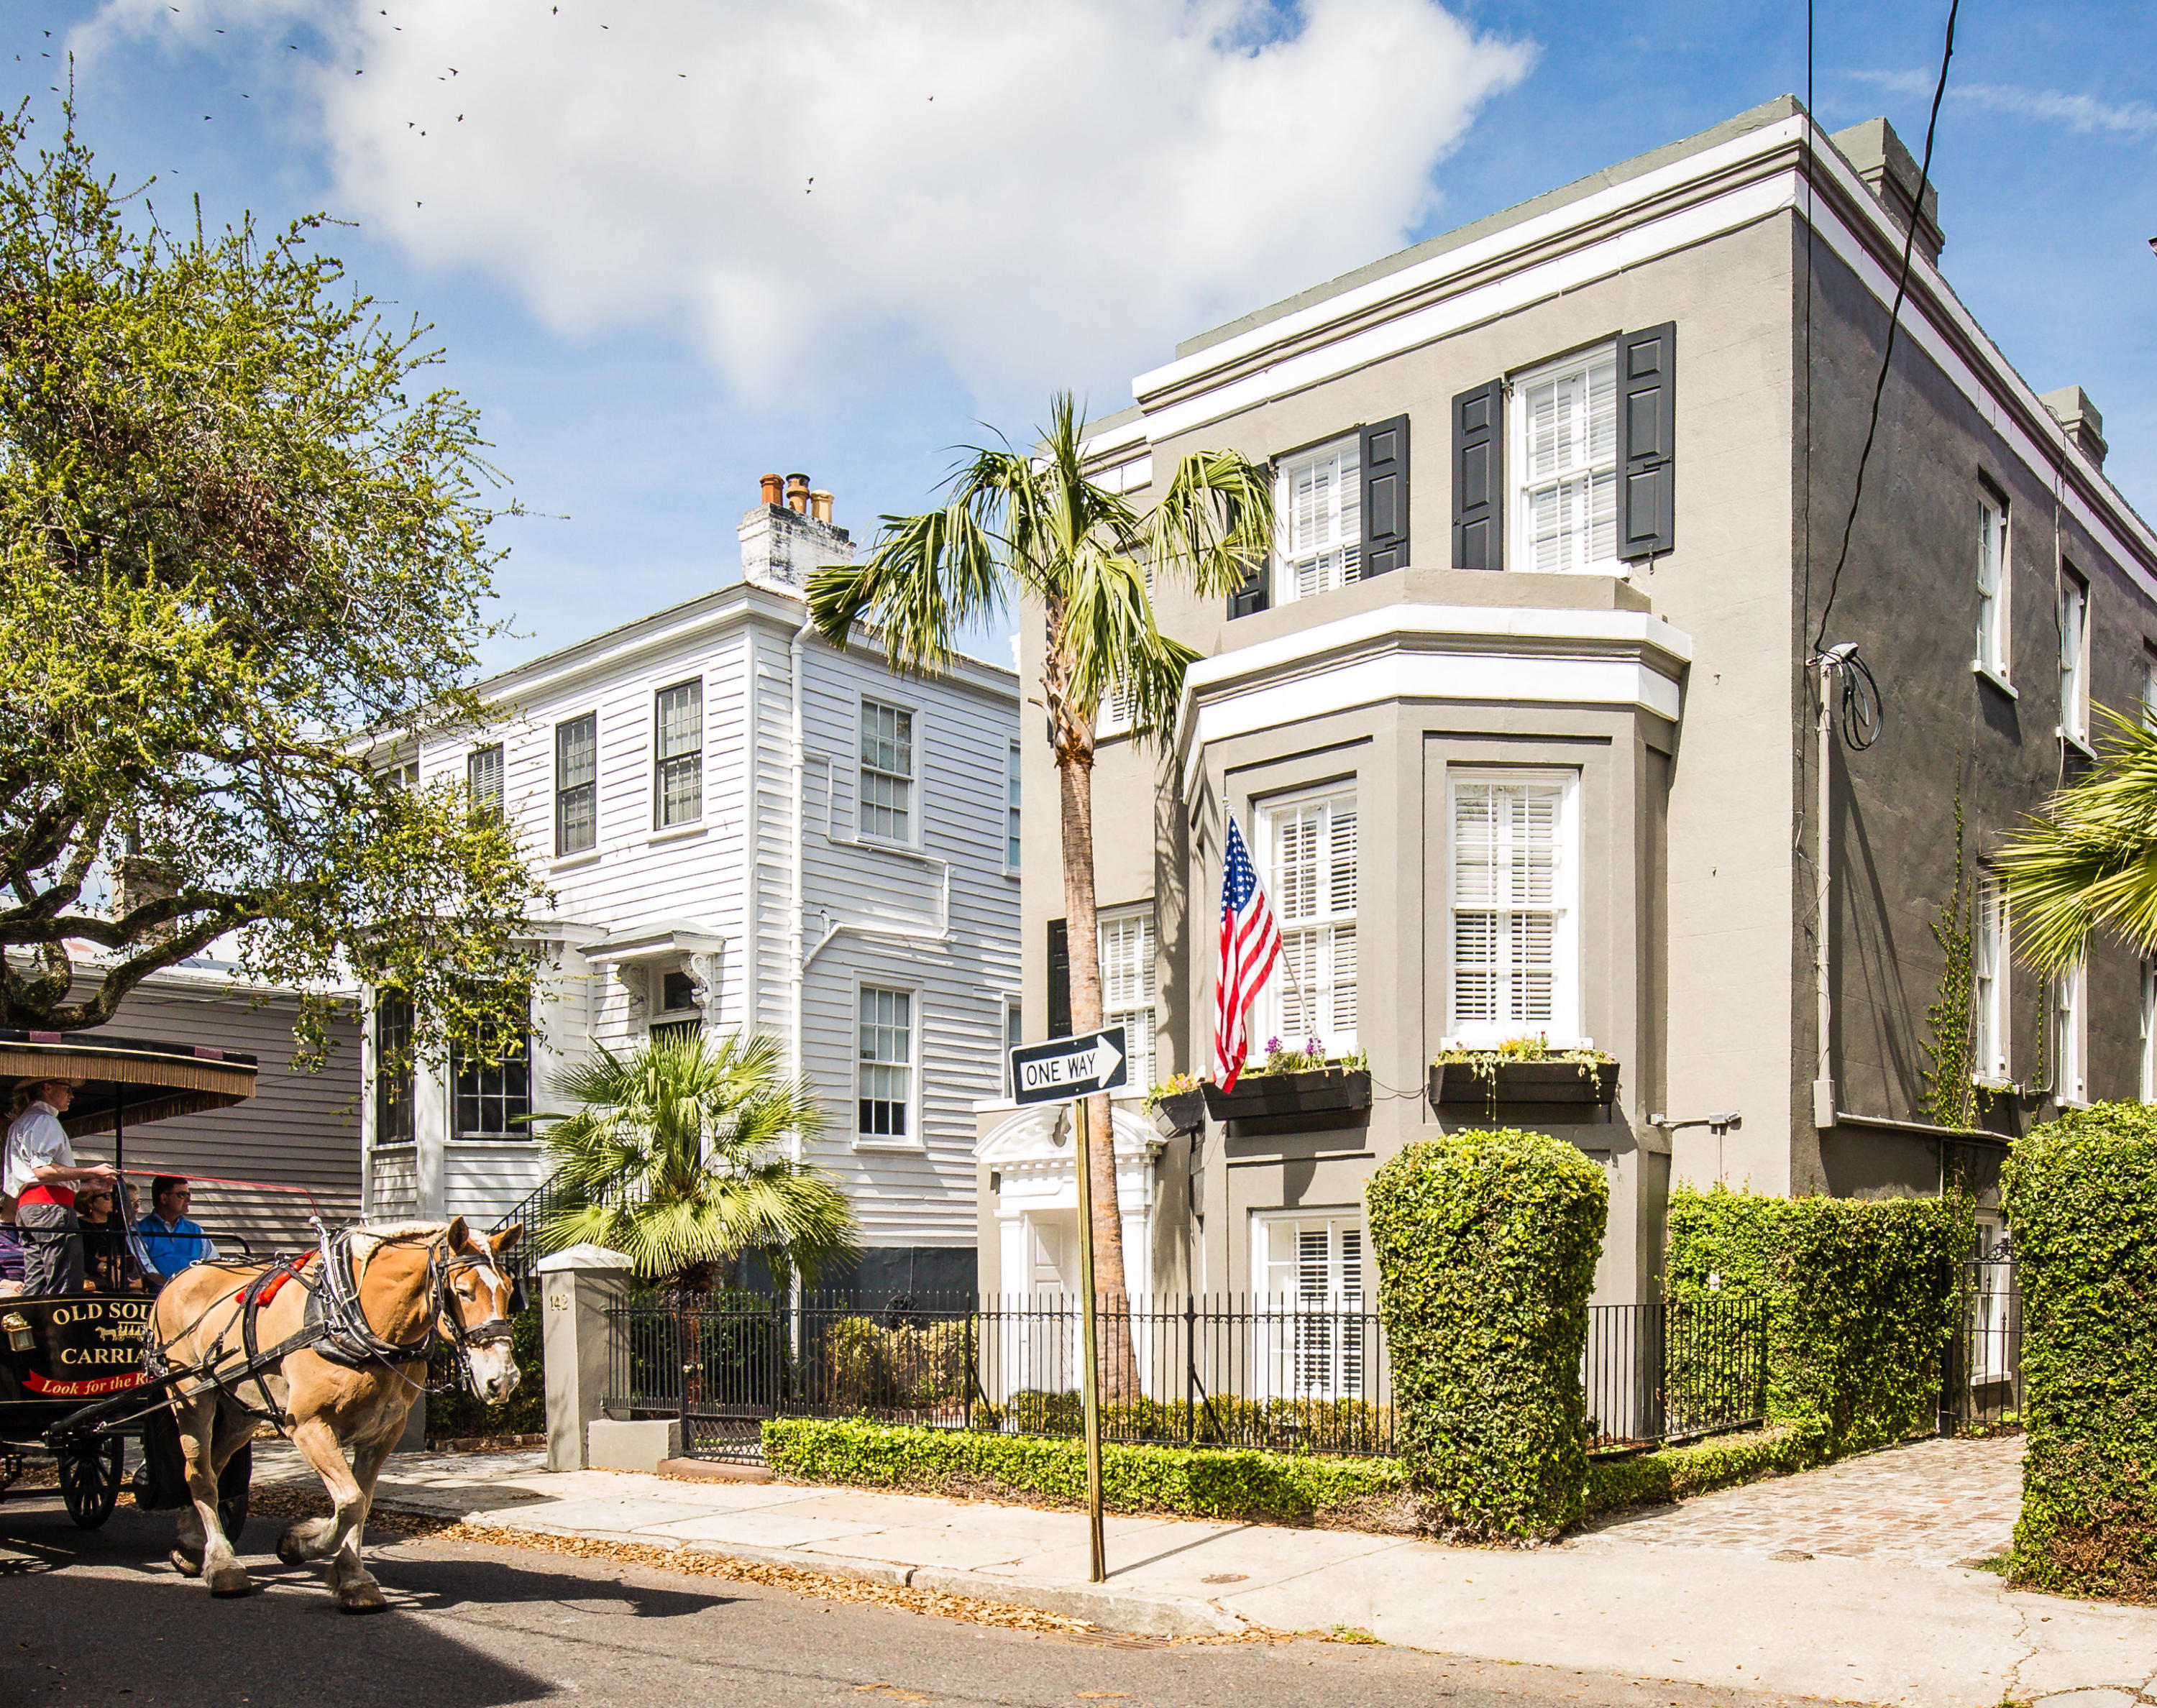 Home for sale 142 Tradd Street, South Of Broad, Downtown Charleston, SC